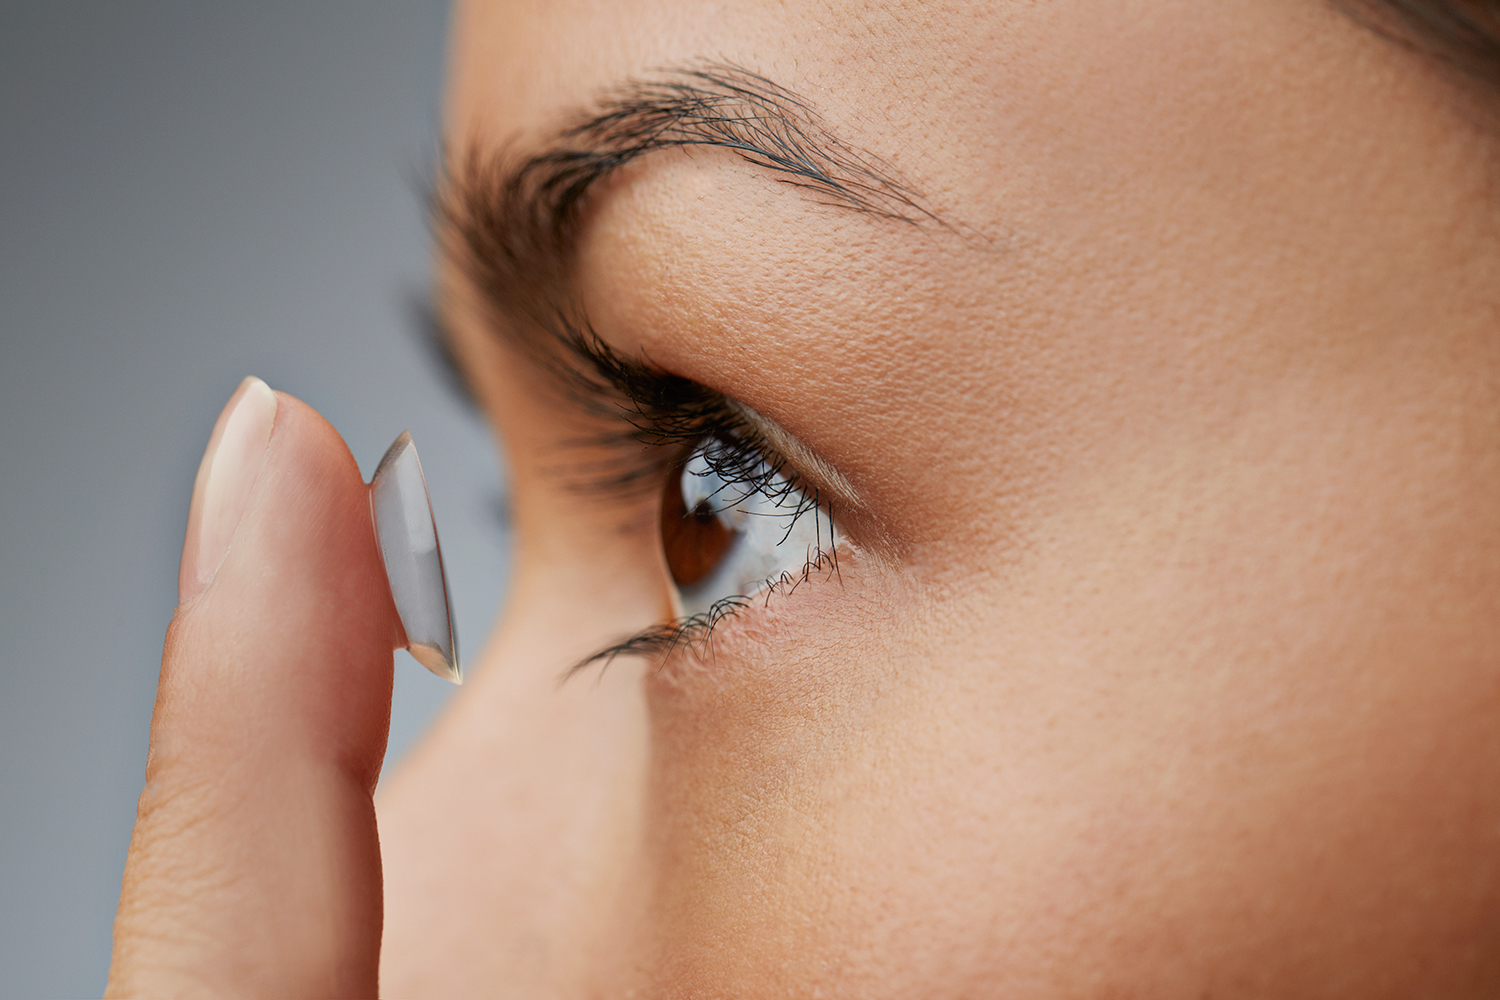 How to Keep Your Contact Lenses Healthy